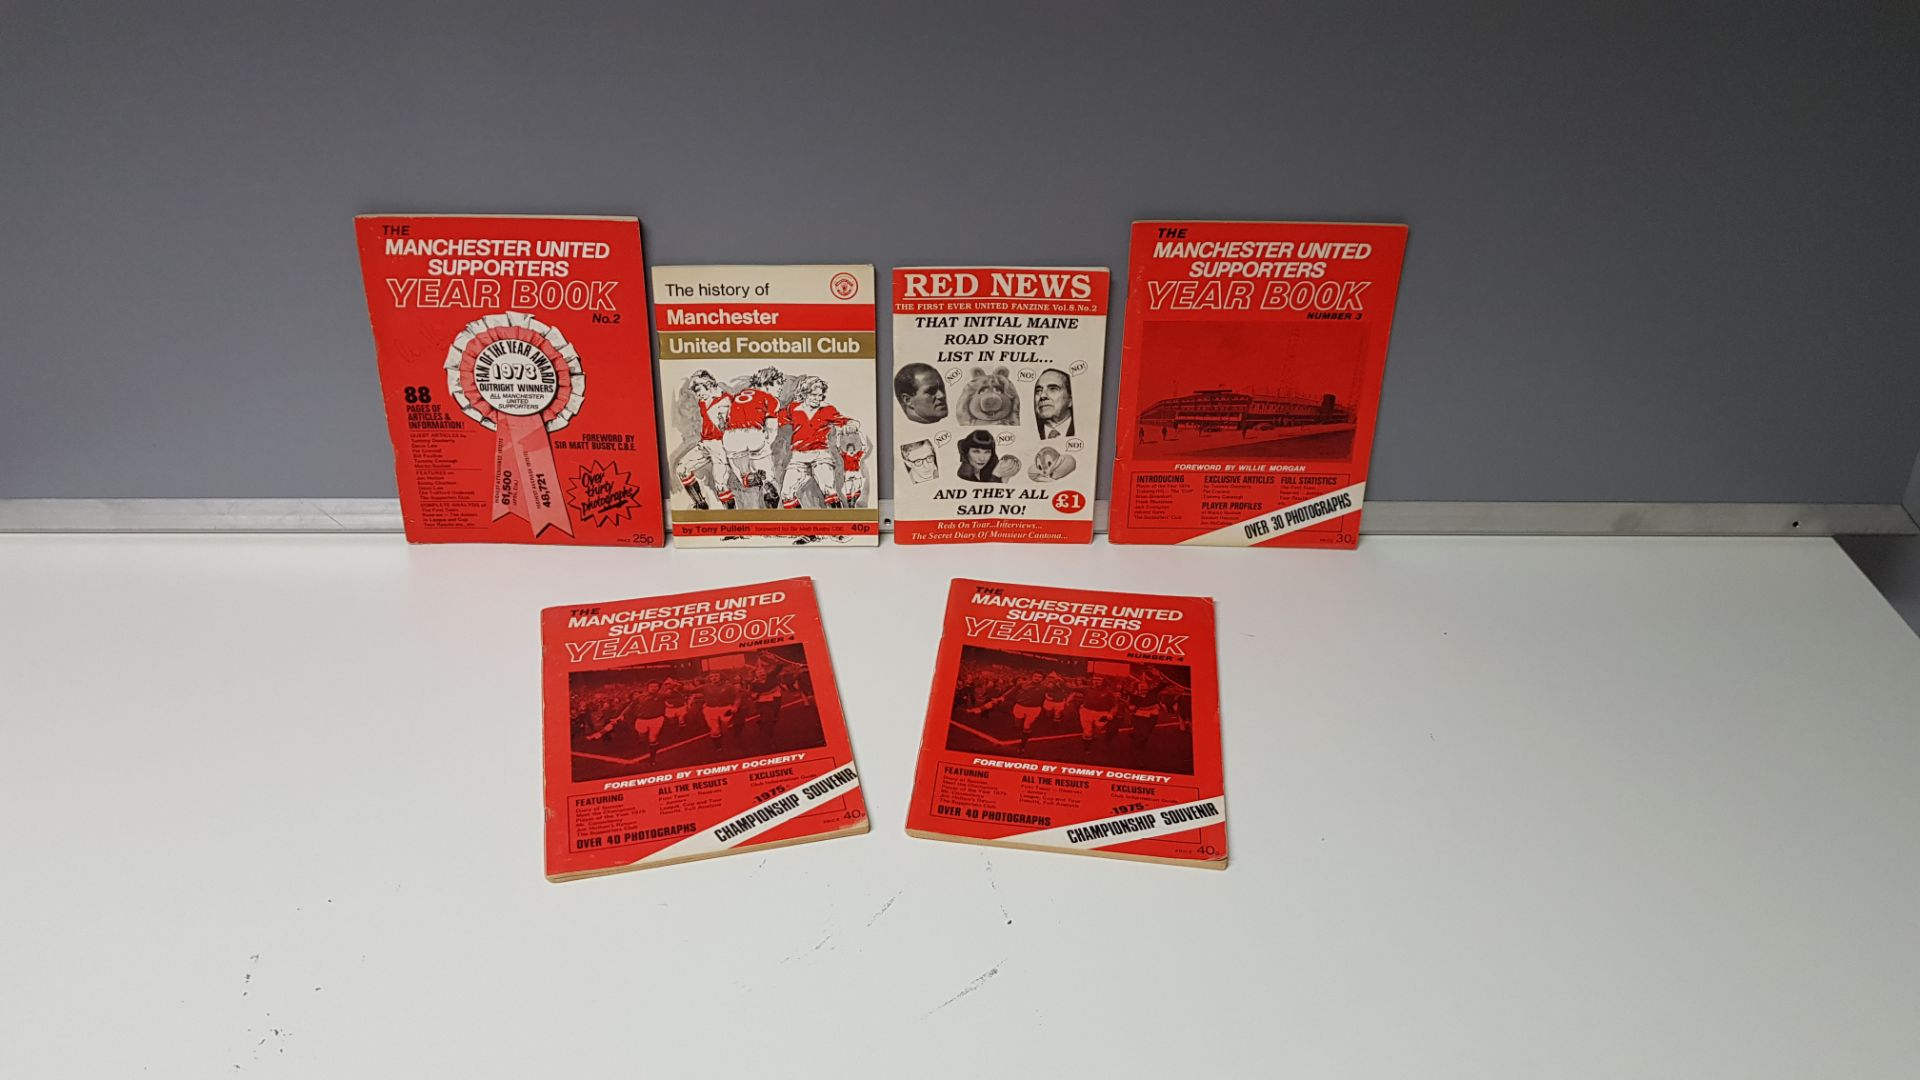 6 X MIXED MANCHESTER UNITED MEMORABILIA BOOKS TO INCLUDE - 1 X MAN UTD 1973 NO.2 YEAR BOOK WITH ALEX